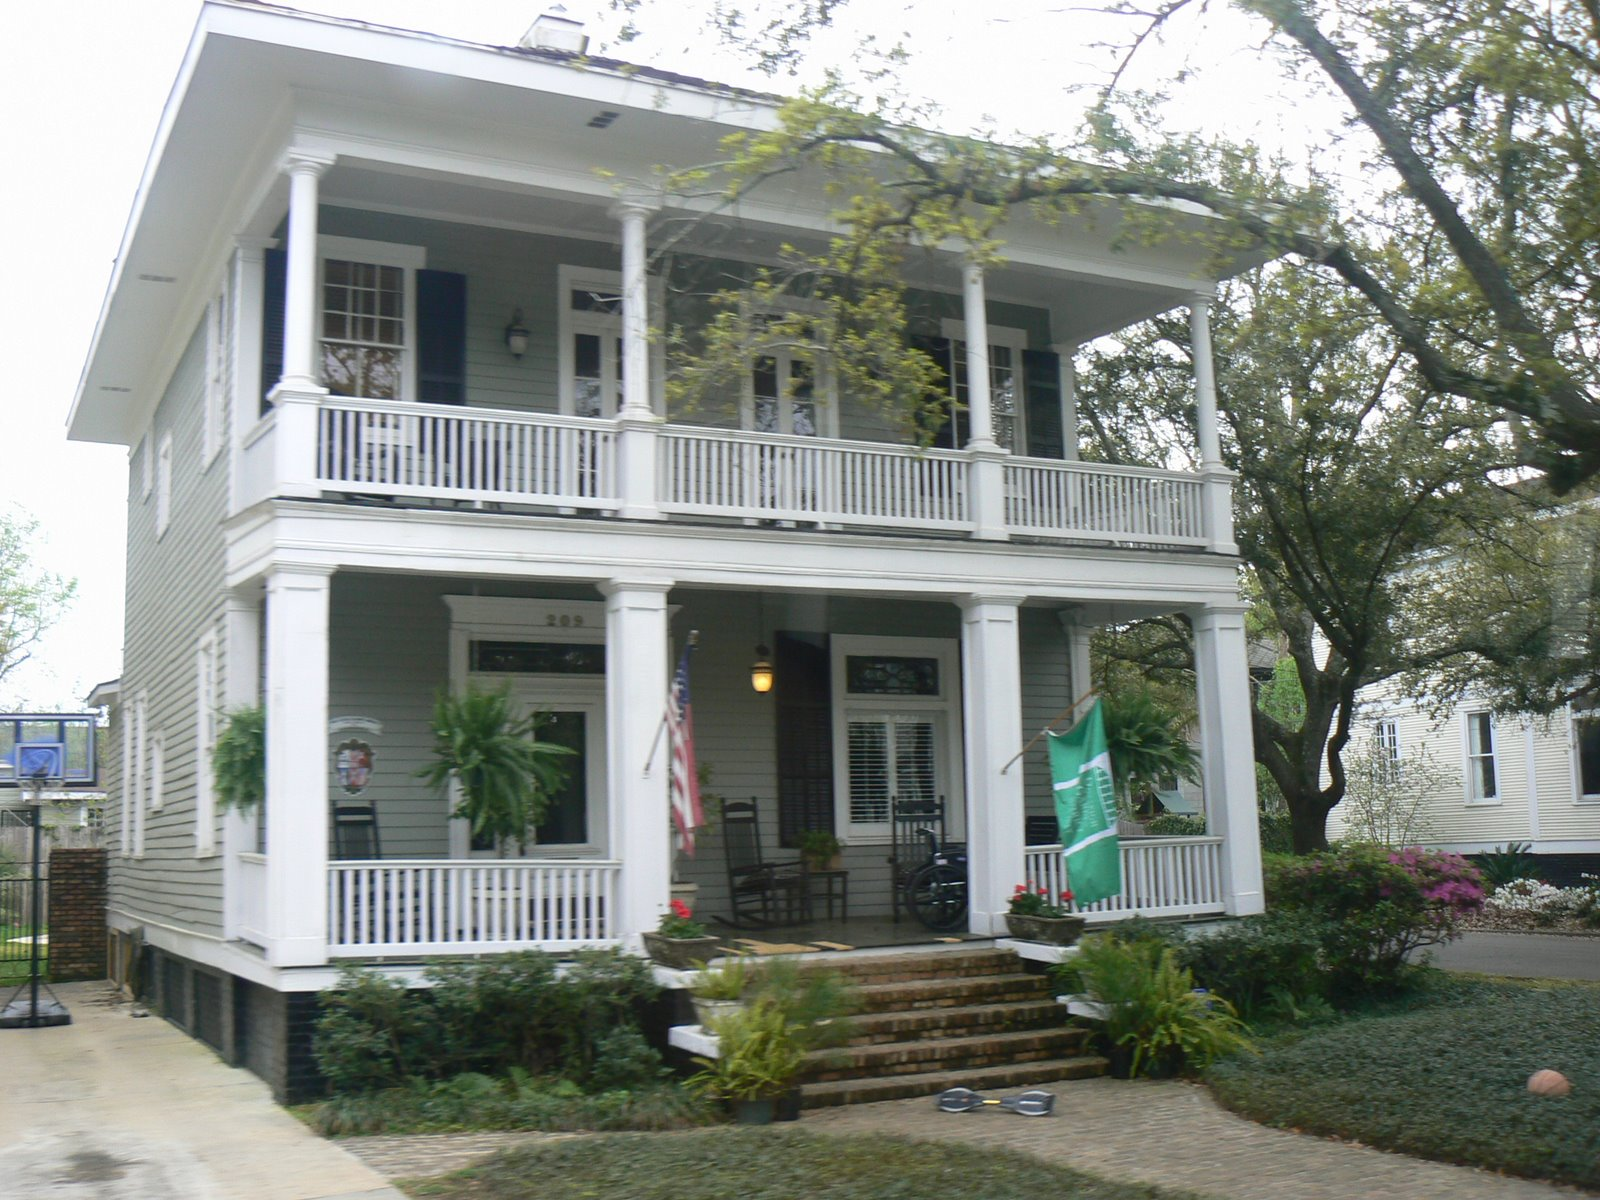 Cajun and creole cottages in mobile readuponit for Cajun cottages